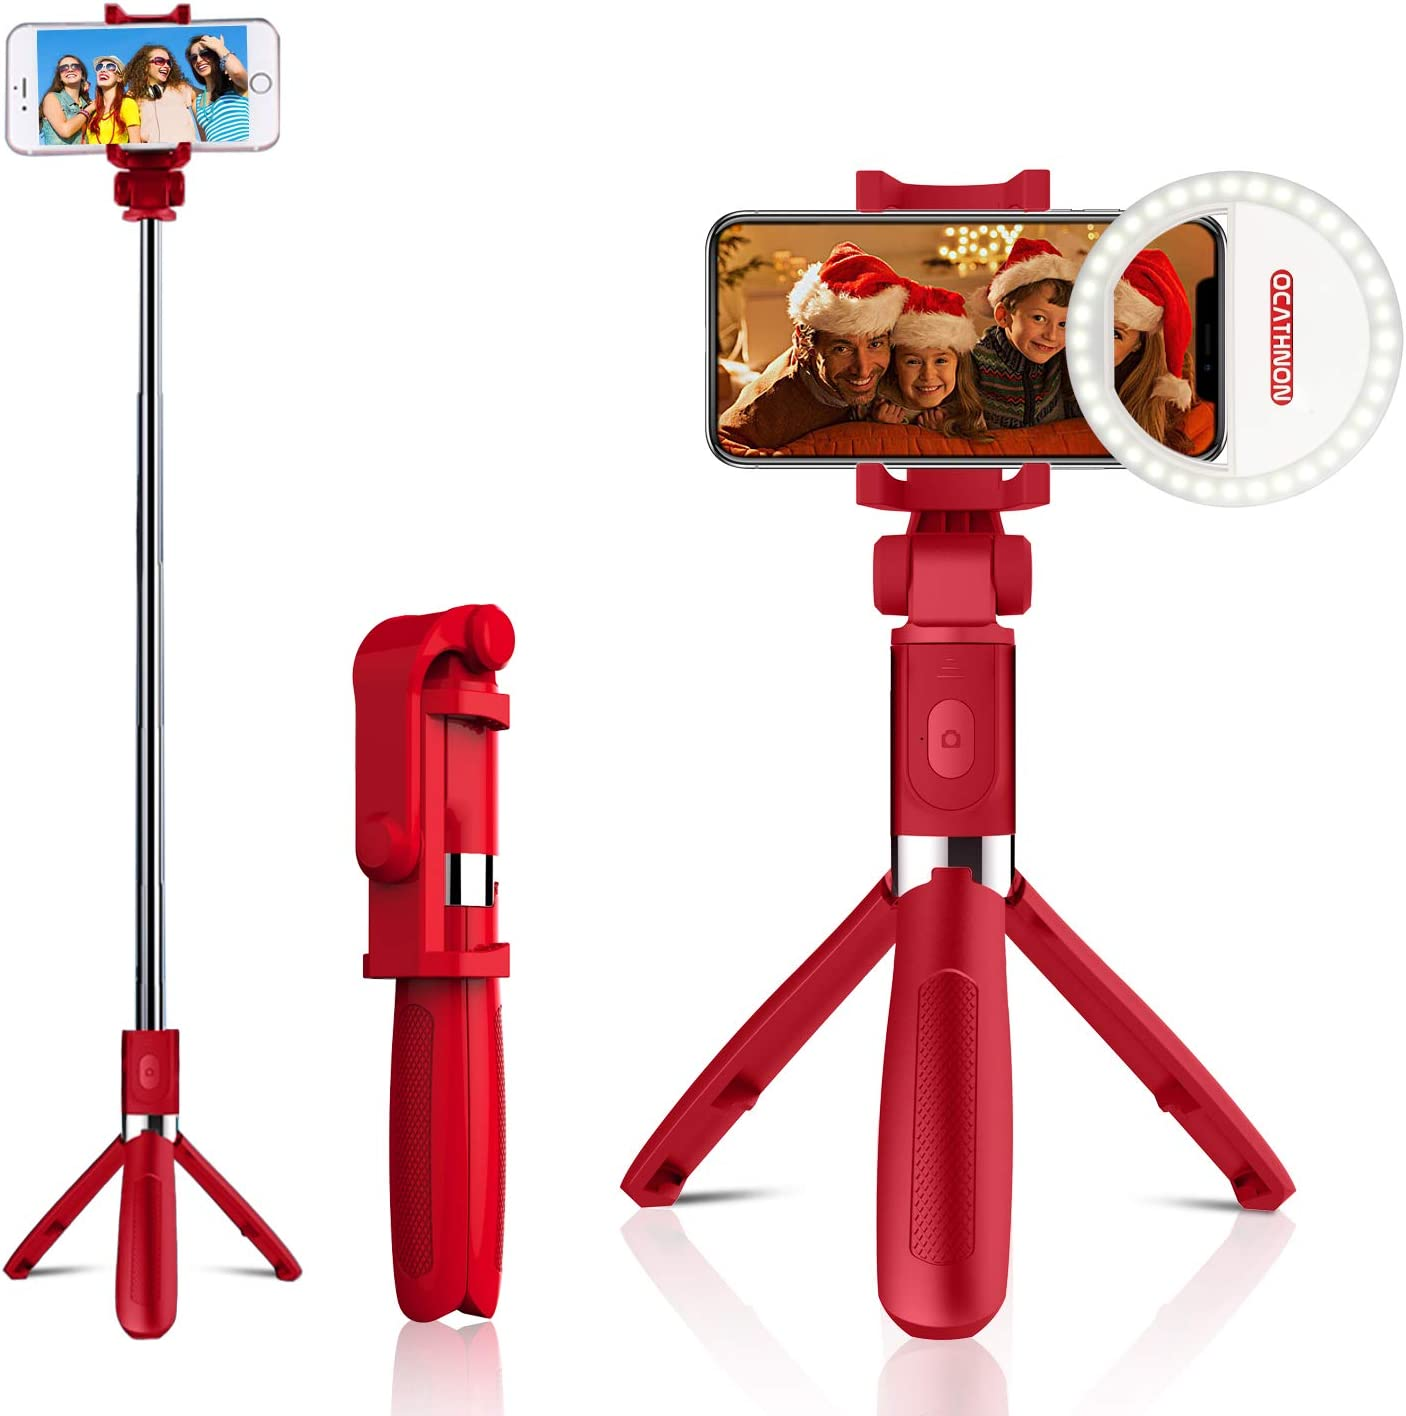 N4U Online/® Samsung Galaxy A8 Premium Handheld Selfie Stick Monopod Extendable Function with Adjustable Phone Holder Comes With Bluetooth Wireless Shutter Remote Control Black